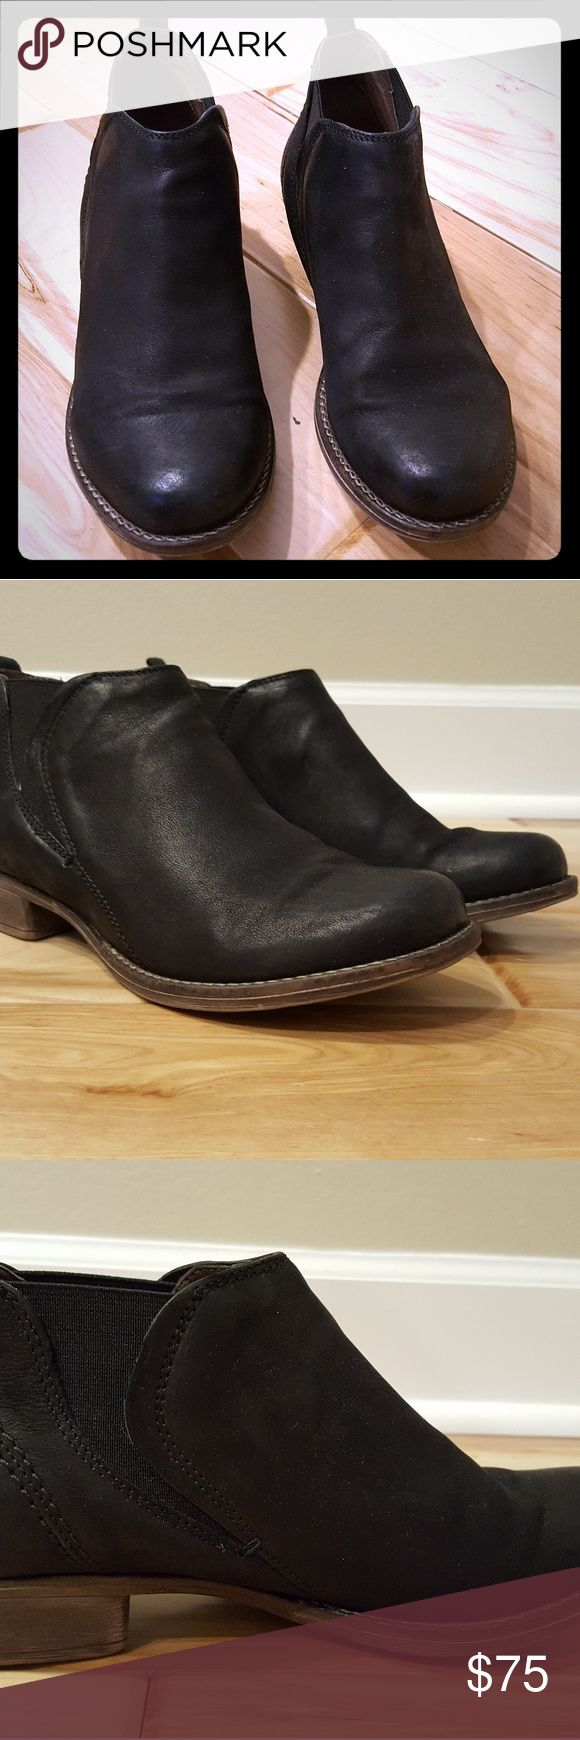 Clarks Colindale Oak black shoes sz 5 UK / 7.5 US Clarks shoes, women's size 7.5 US or 5 UK. These are from the Clarks Narrative line - style is Colindale Oak. Black leather upper and rubber soles. They are a slip-on style with elastic - similar to a chelsea style boot.   I bought these in the UK and wore them once indoors, so they are in excellent, new condition. These are not available at Clarks in the US. Clarks Shoes Flats & Loafers